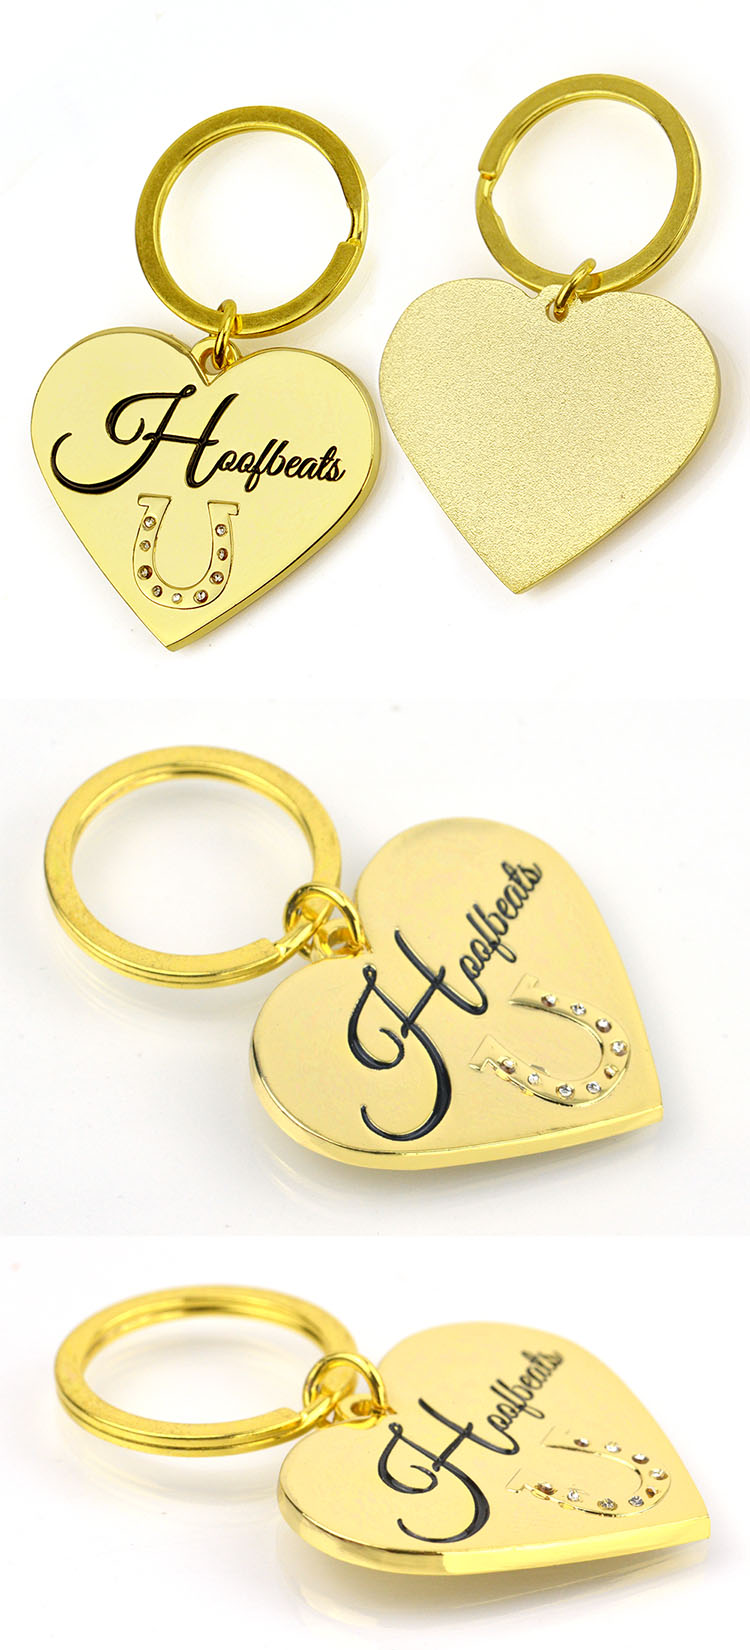 Good Quality Wholesale Custom Metal Keychain Dad Gifts Set for Fathers Day